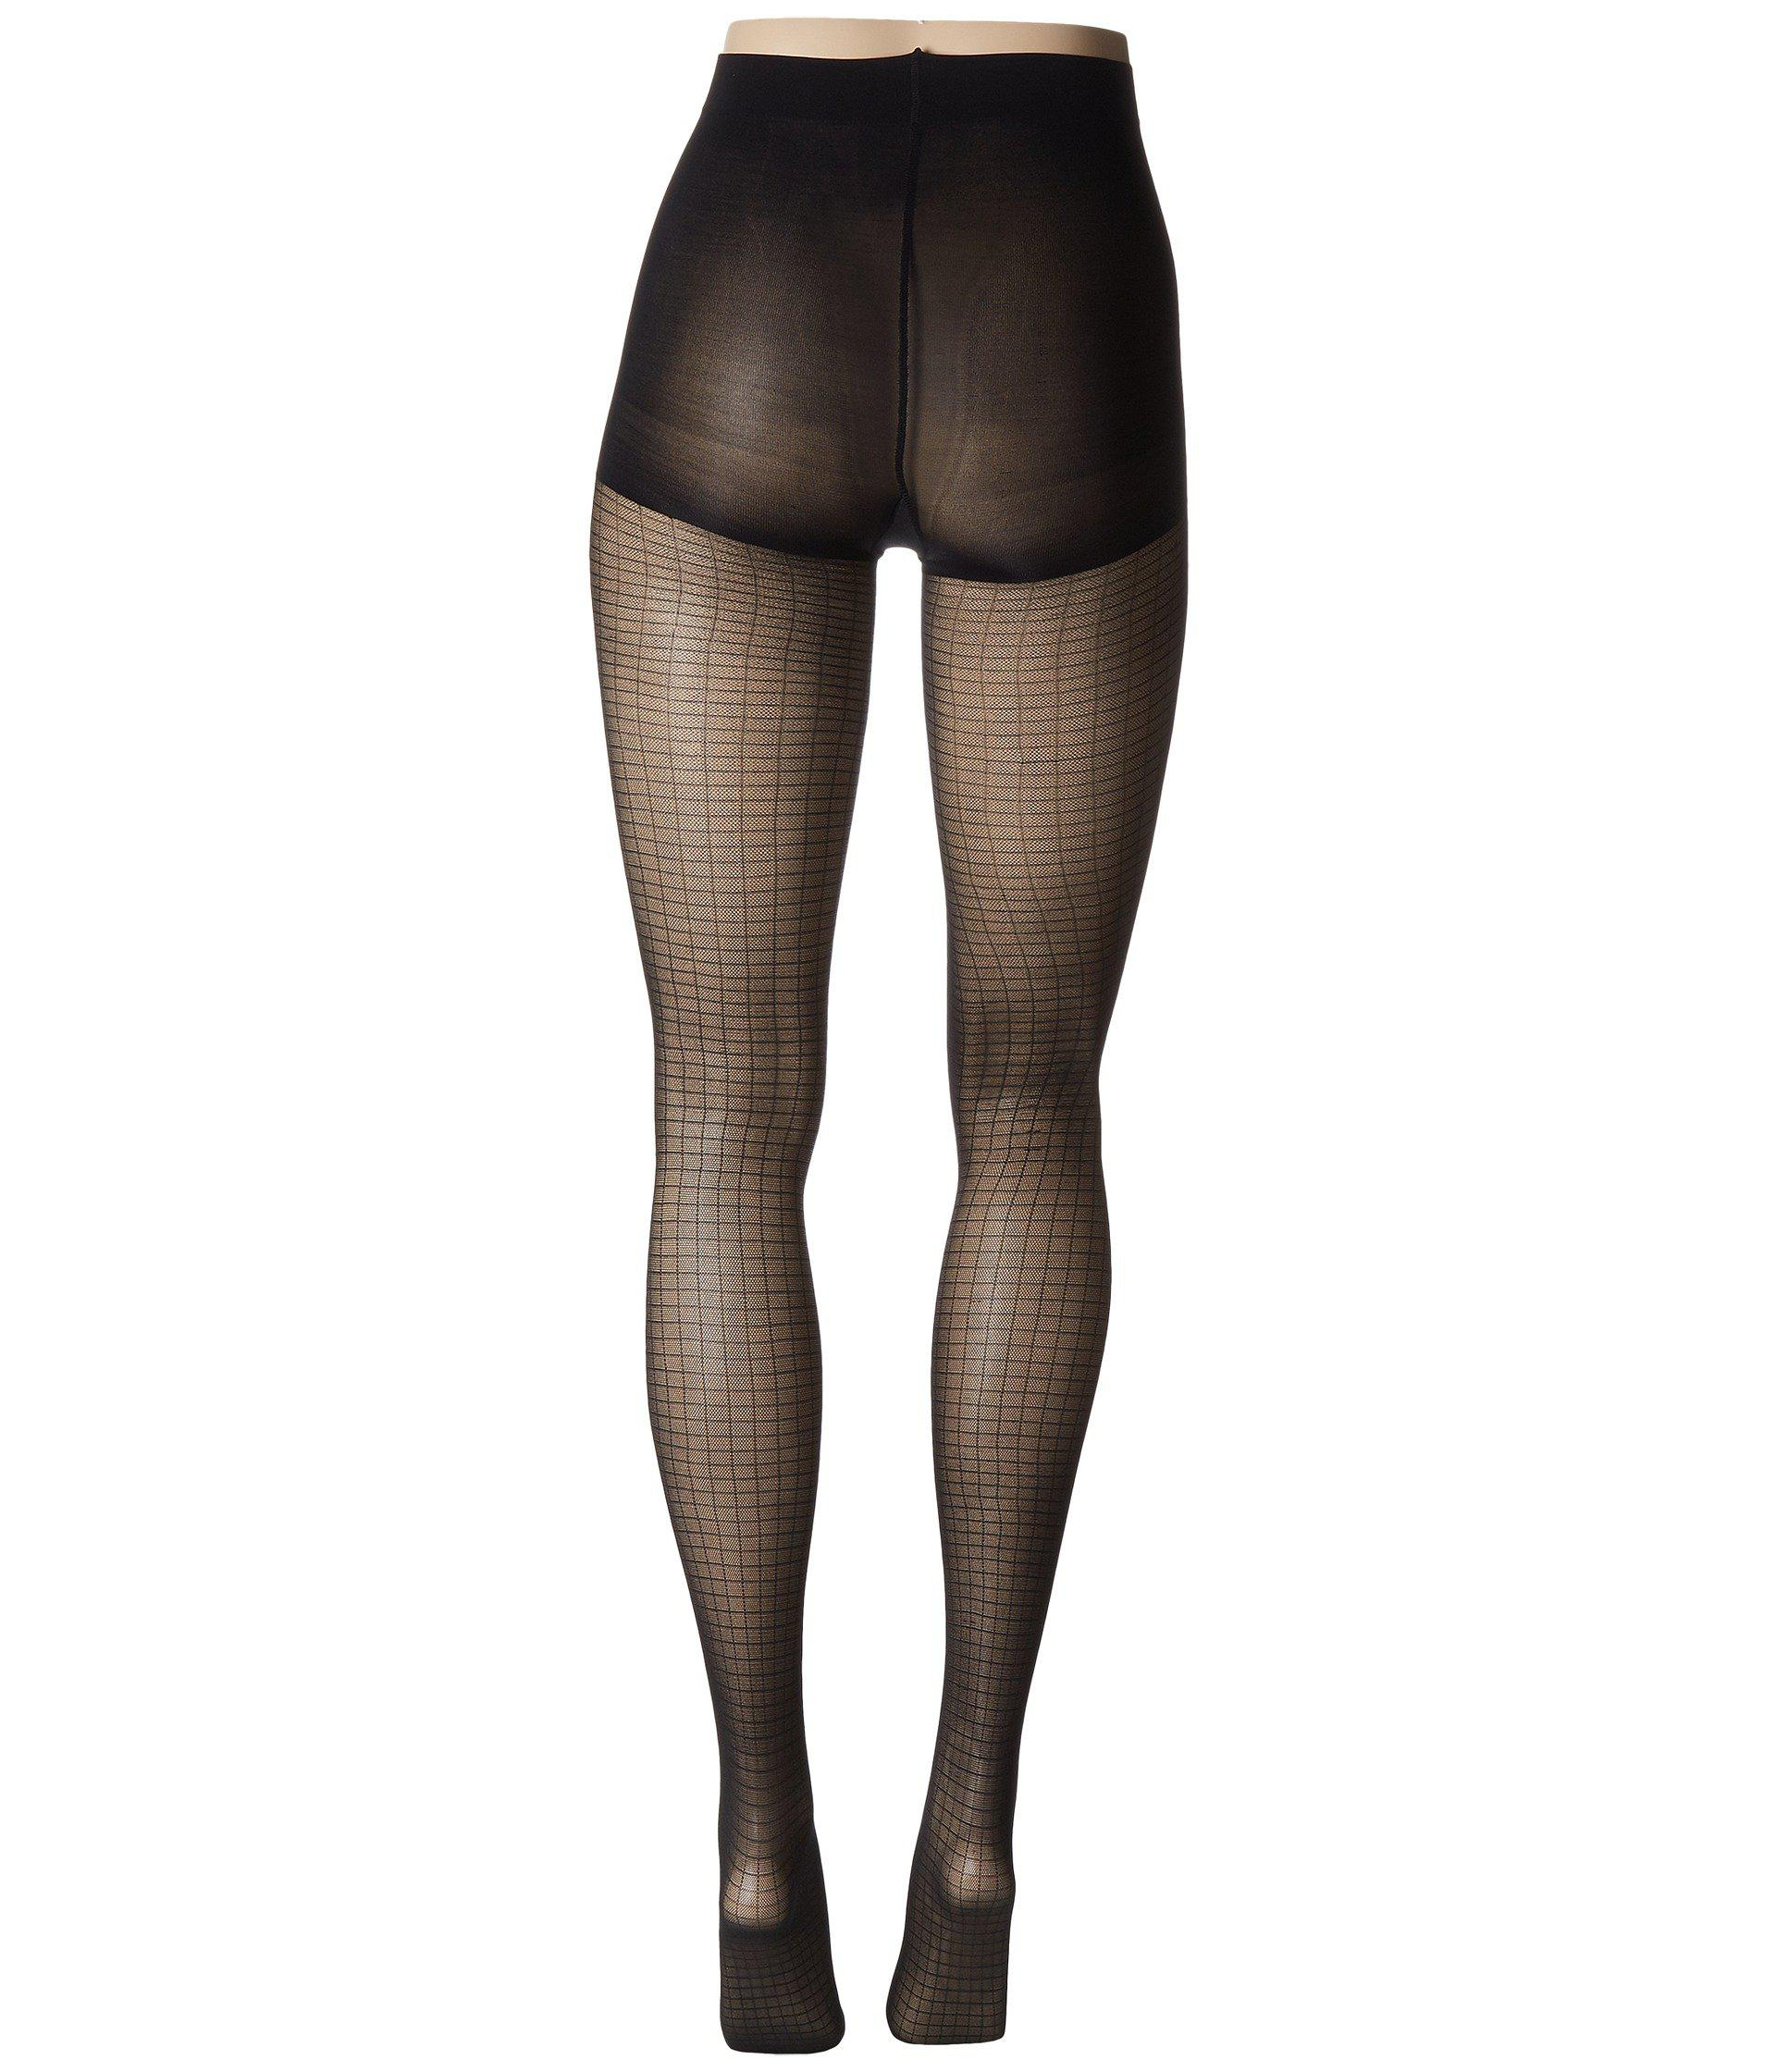 87101b1ccf1cc Lyst - Calvin Klein Shimmer Mesh Grid Tights With Control Top in Black